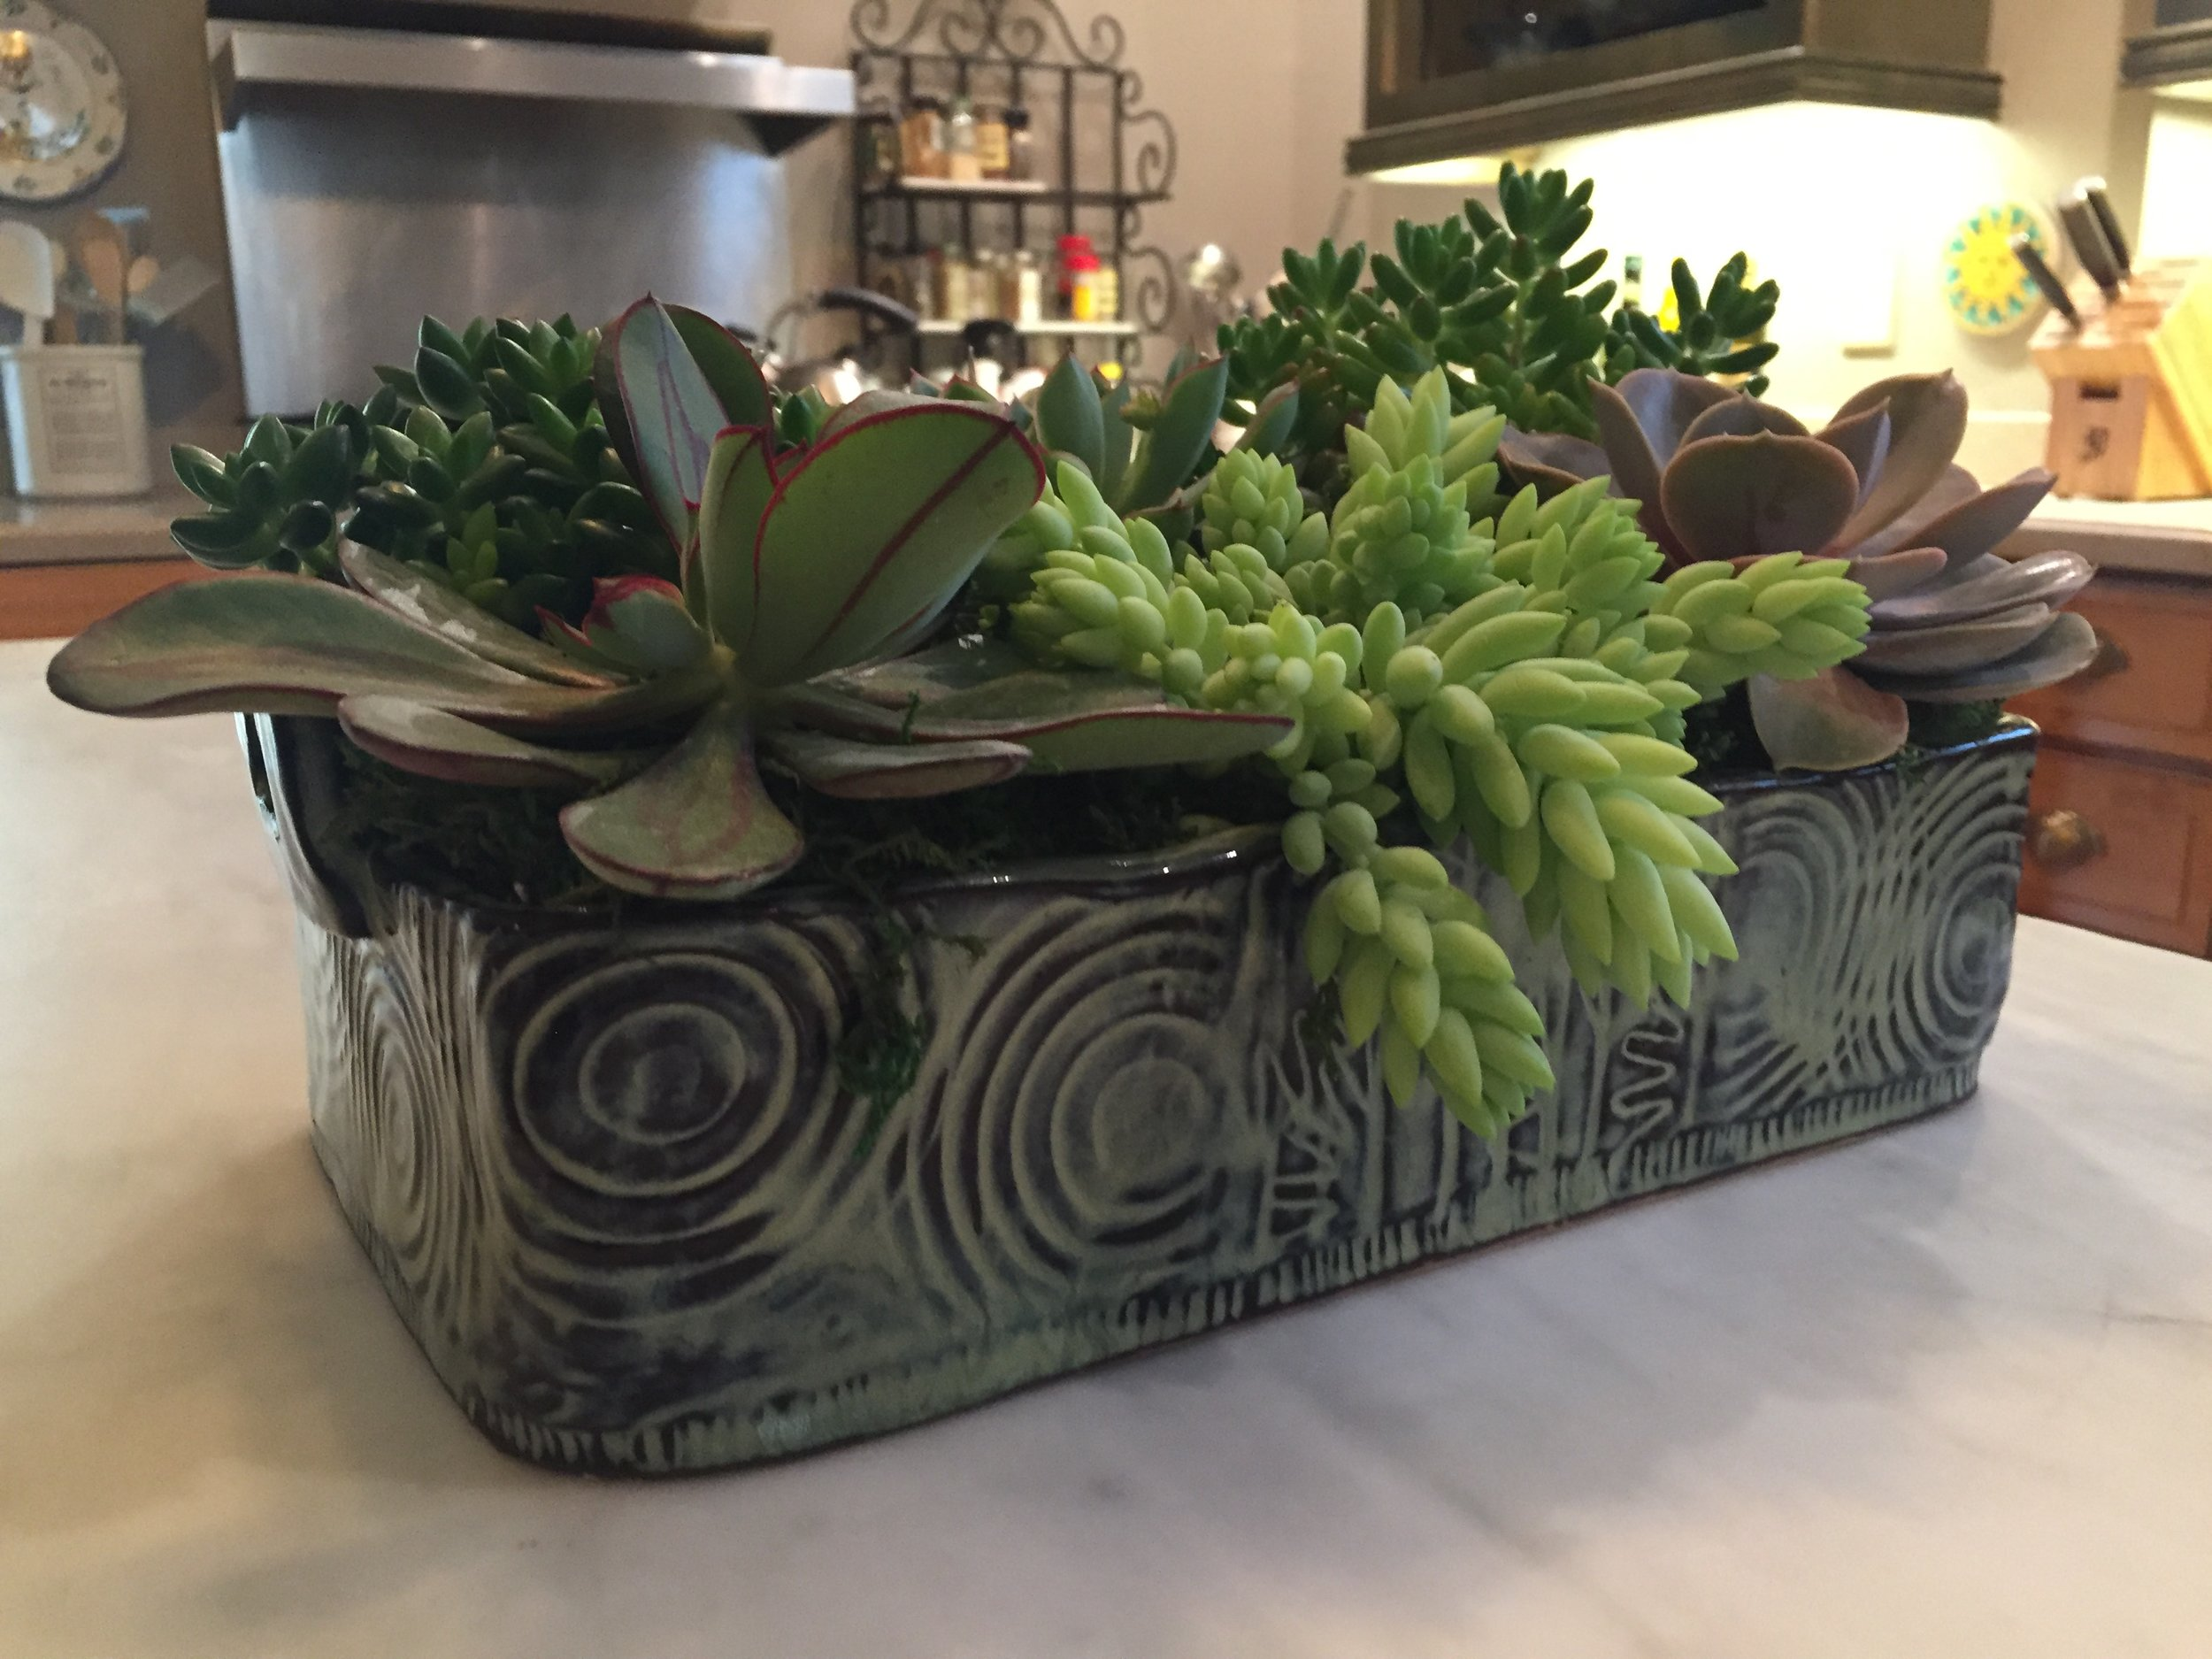 I would never have thought of this! This baking dish has been given a new assignment for an Art Tour in its beautiful Southern home! How clever. I am always getting new ideas for my pieces from their owners!